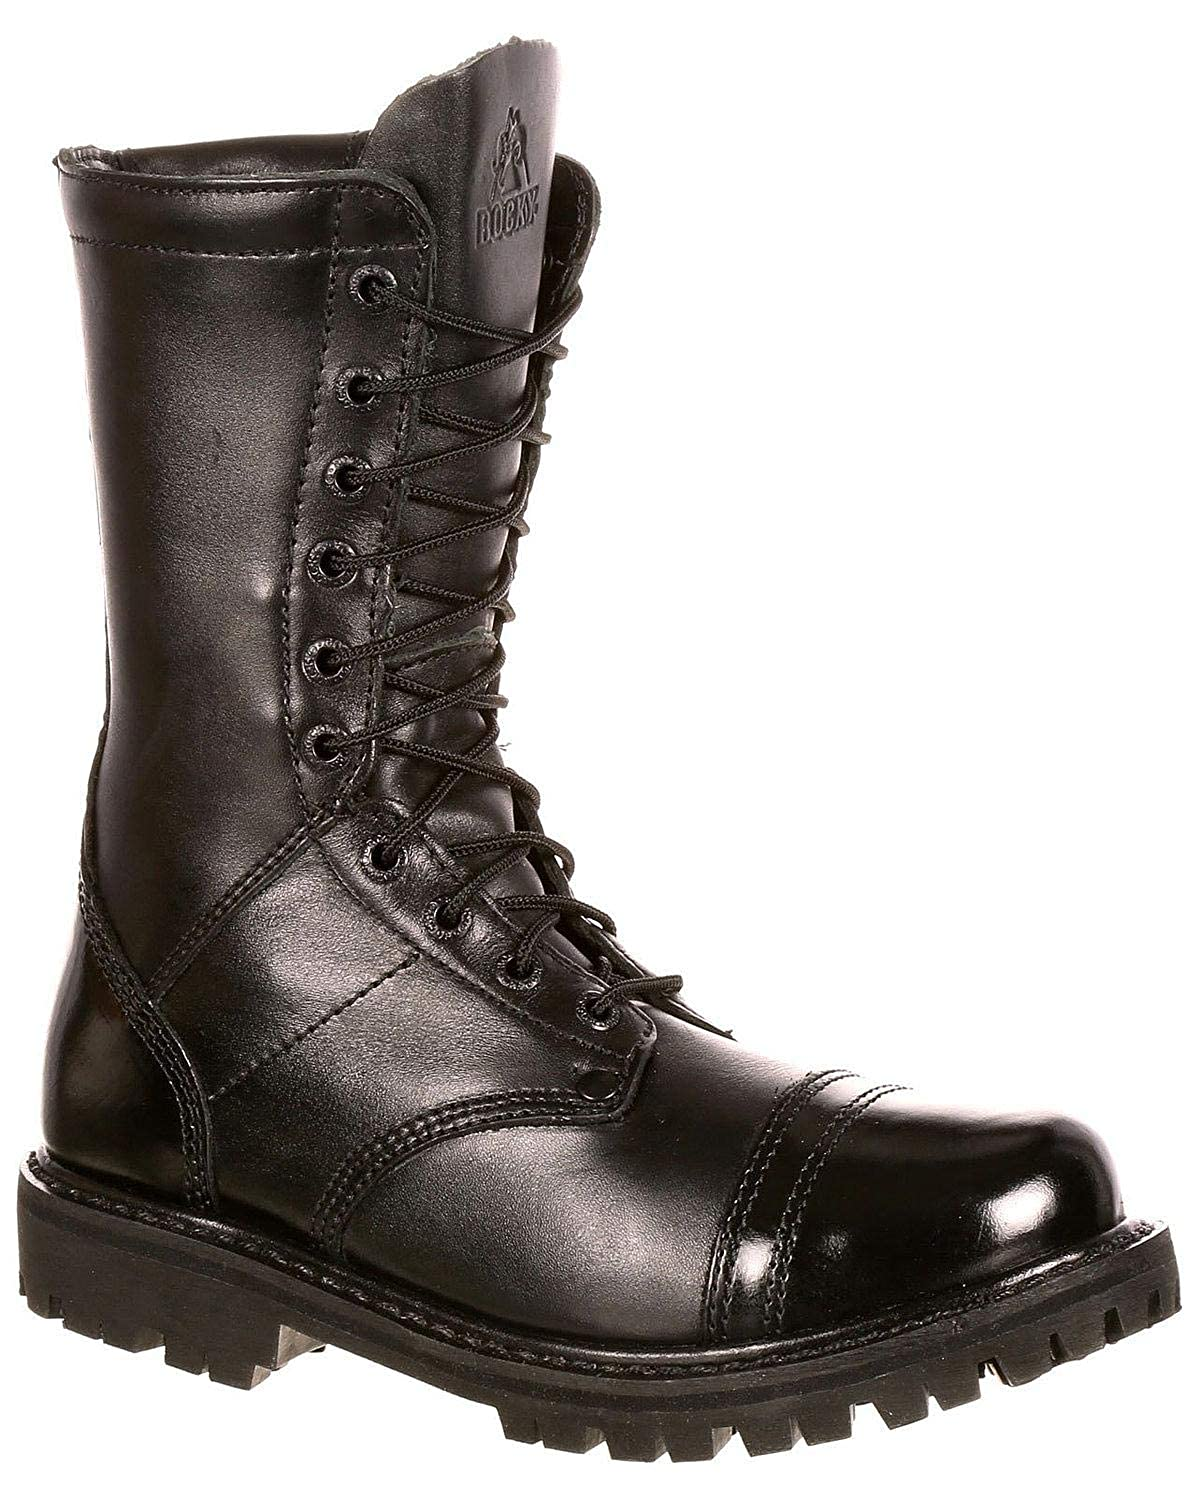 173433a16e9 Rocky Outdoor Boots Womens Zipper Leather Tall Raven FQ0004090  Amazon.ca   Shoes   Handbags